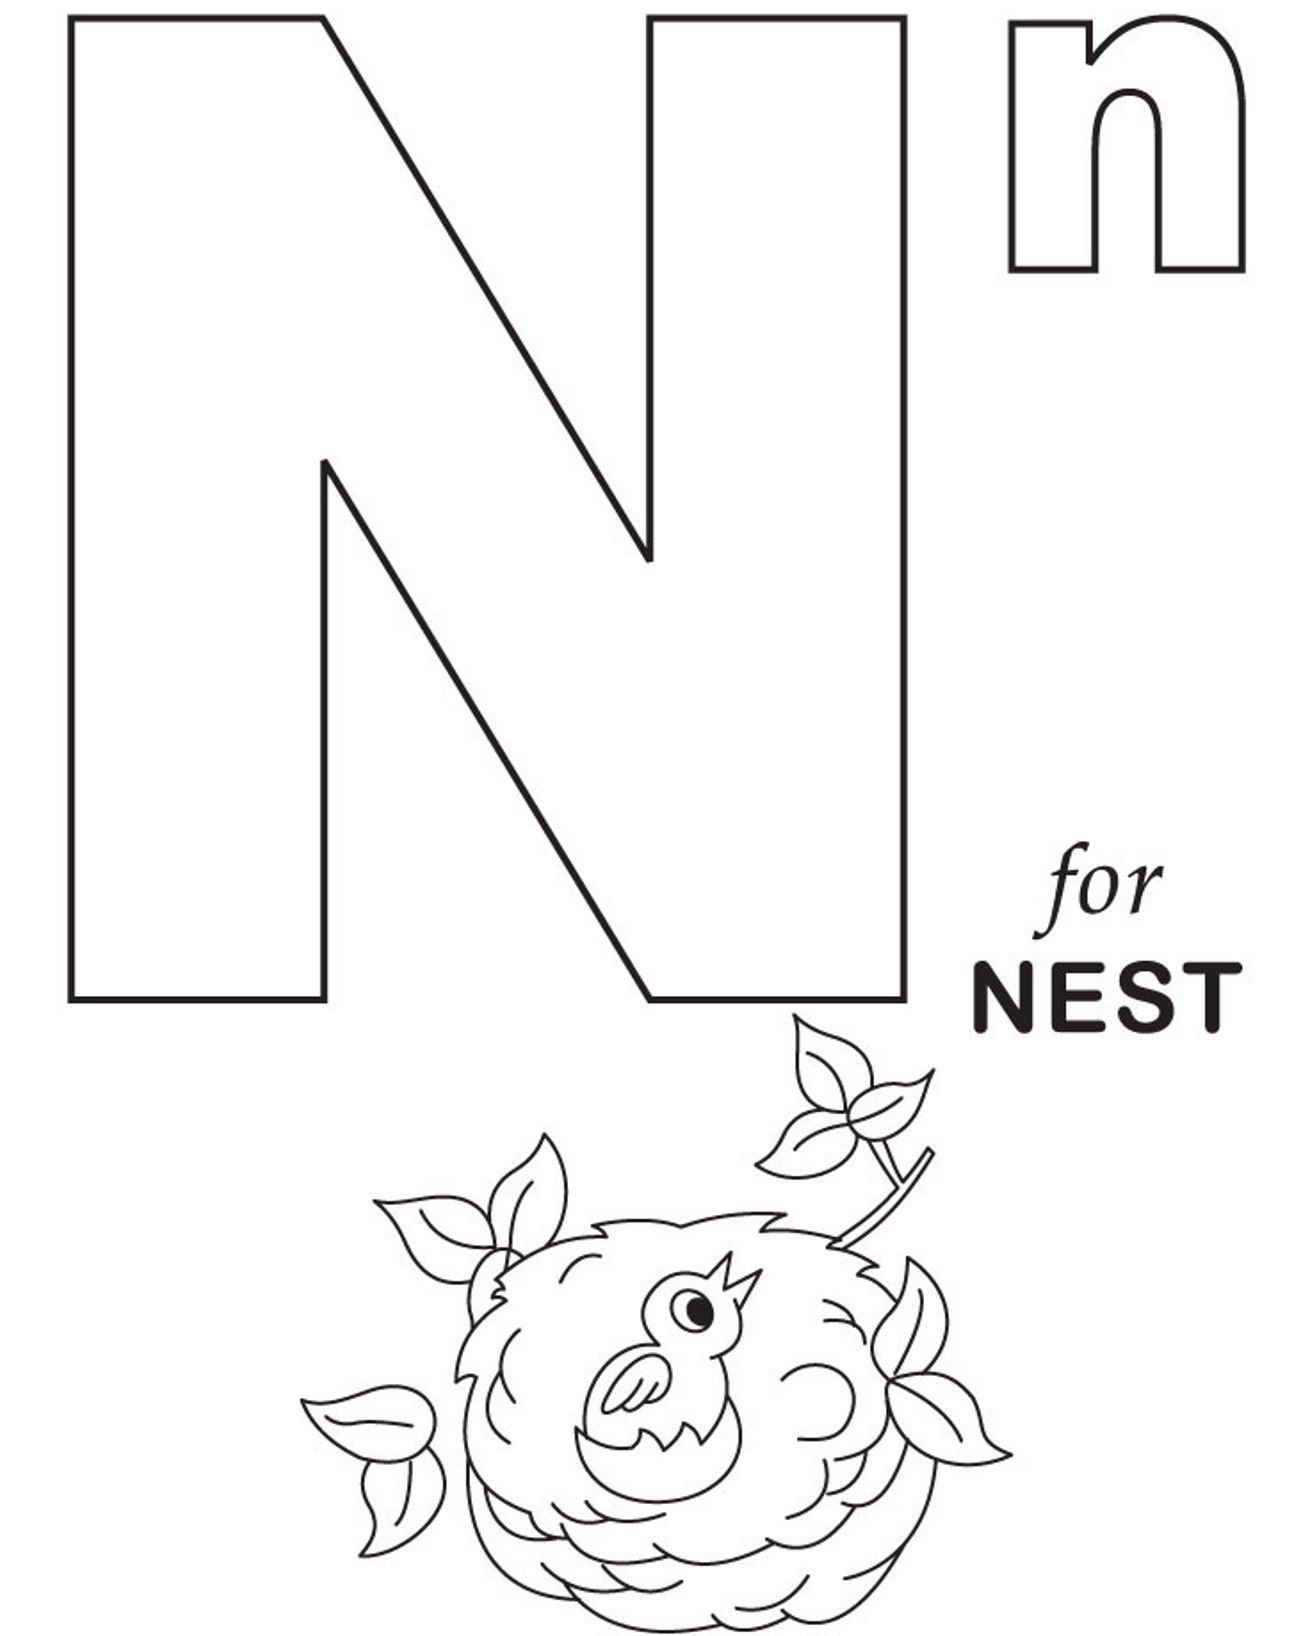 Free Alphabet Coloring Pages N For Nest